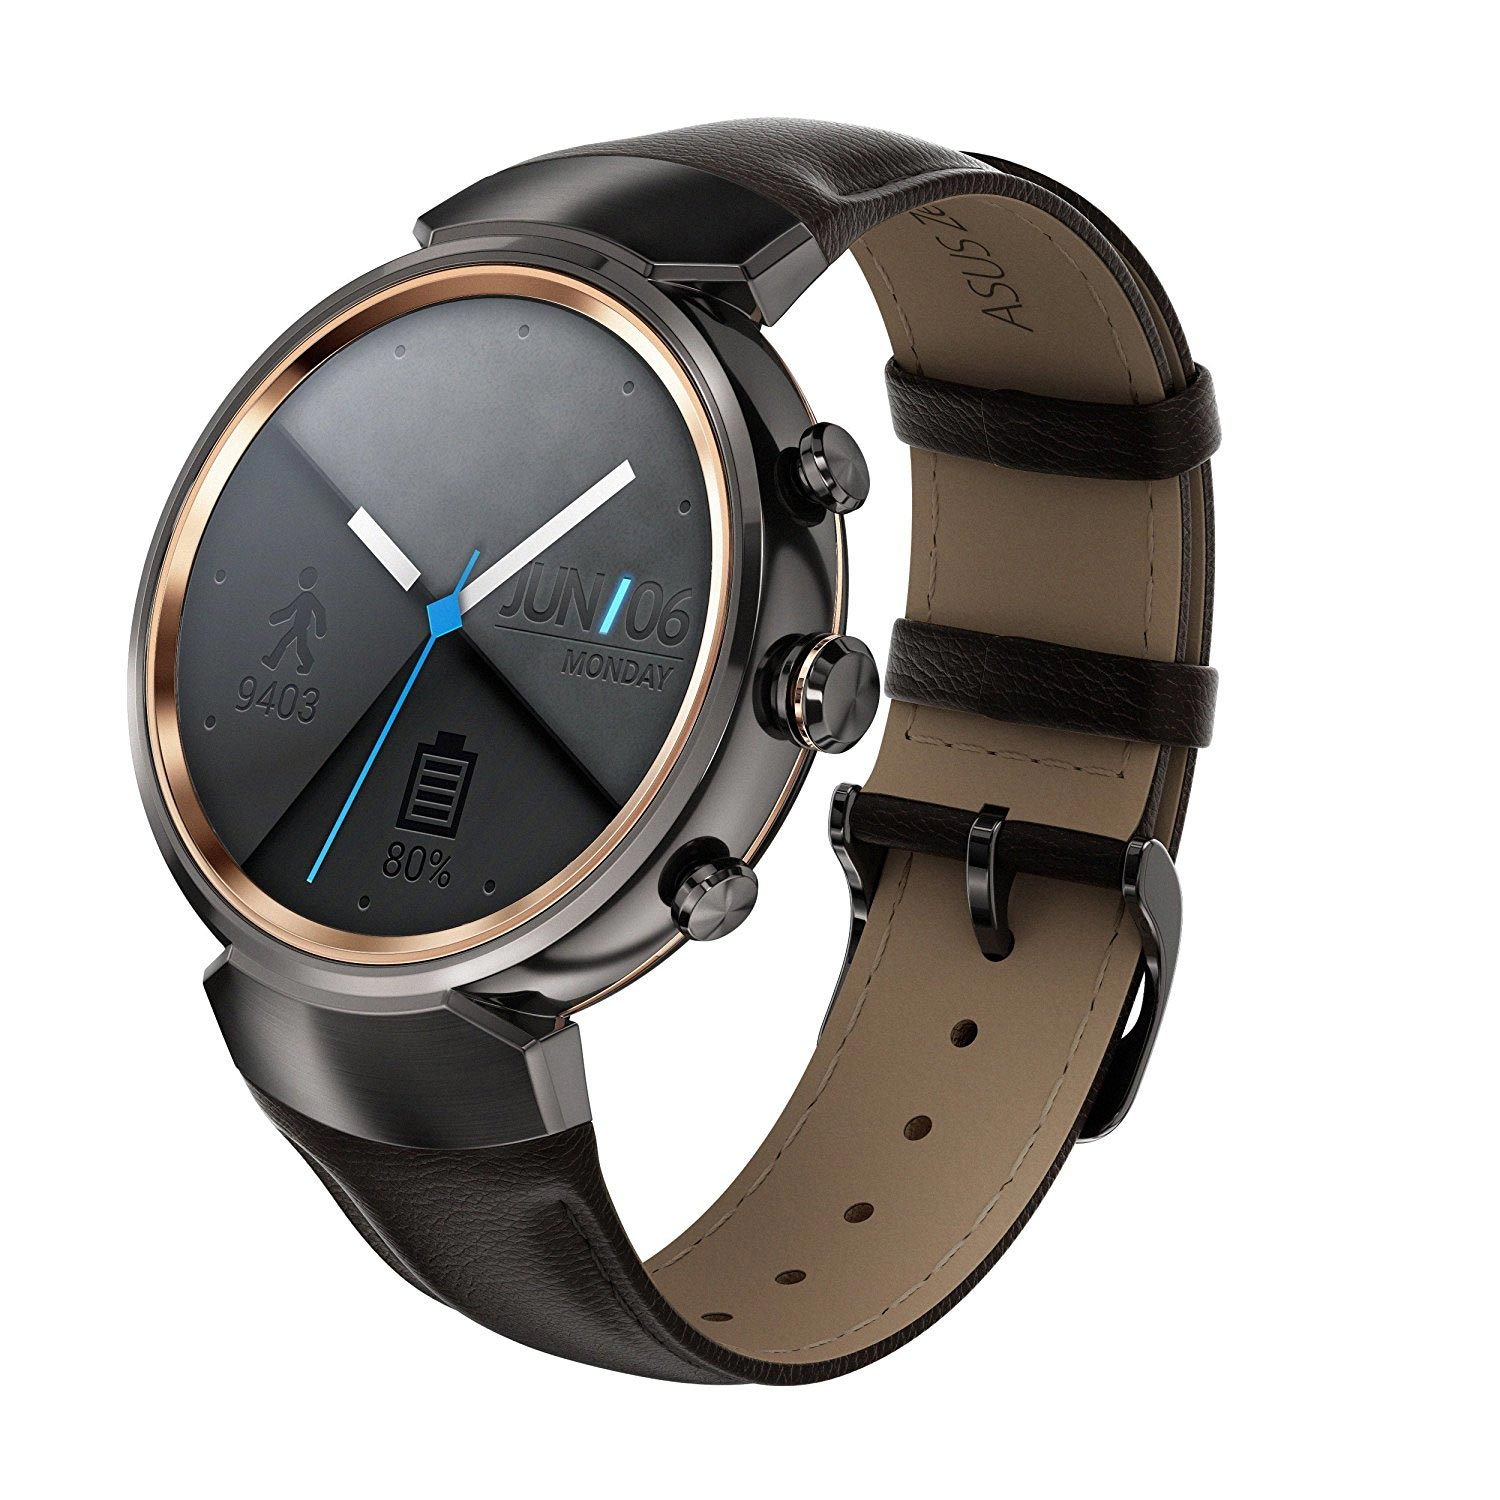 asus zenwatch 3 smartwatch mit andoidwear und multi touch. Black Bedroom Furniture Sets. Home Design Ideas